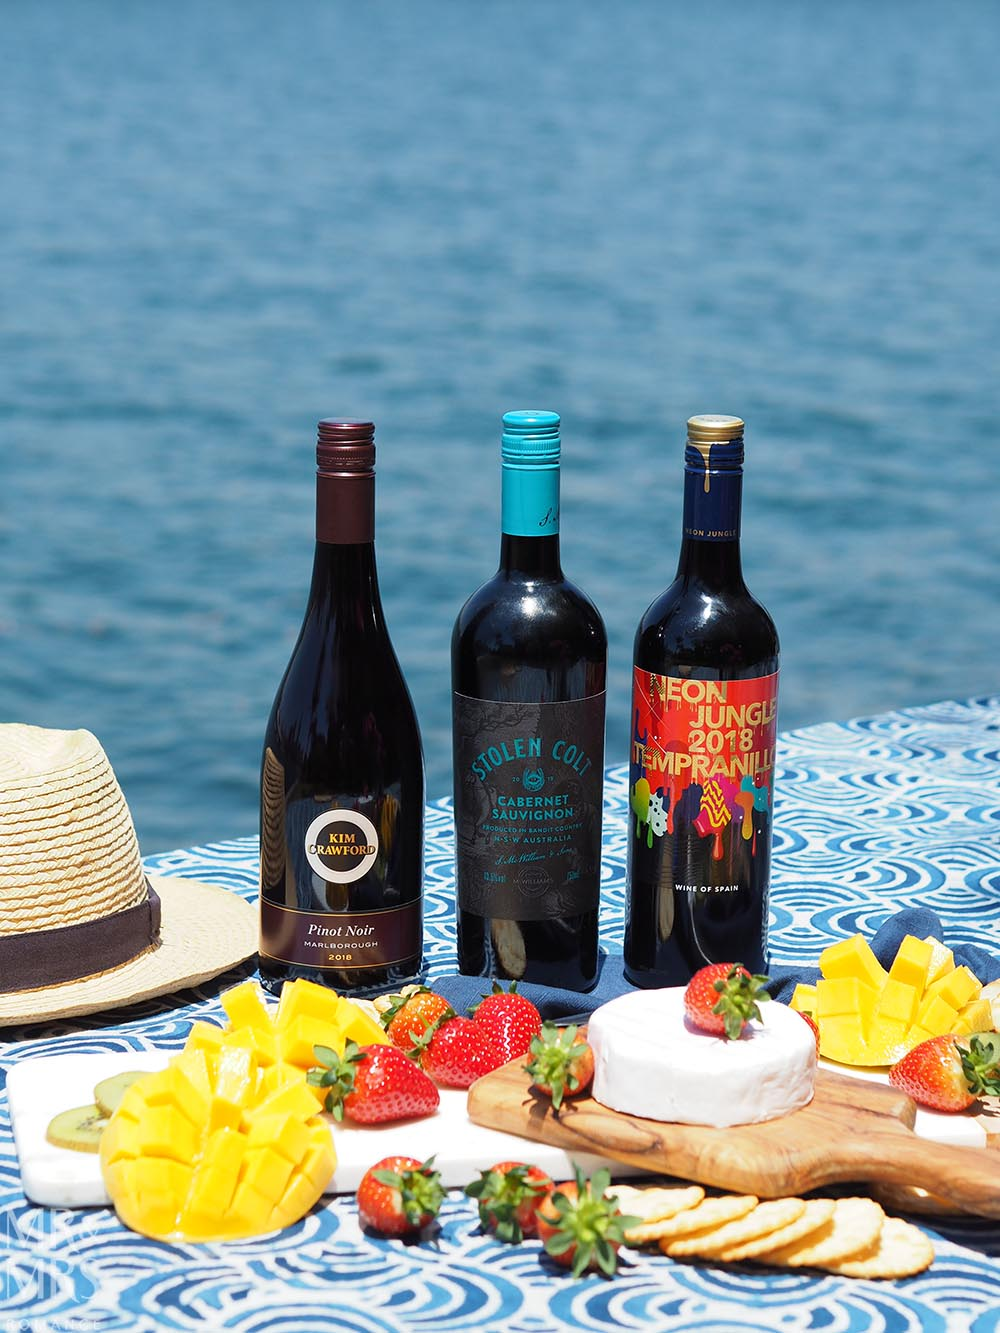 Summer party wines - Kim Crawford Pinot Noir Stolen Colt Cabernet Sauvignon Neon Jungle Tempranillo